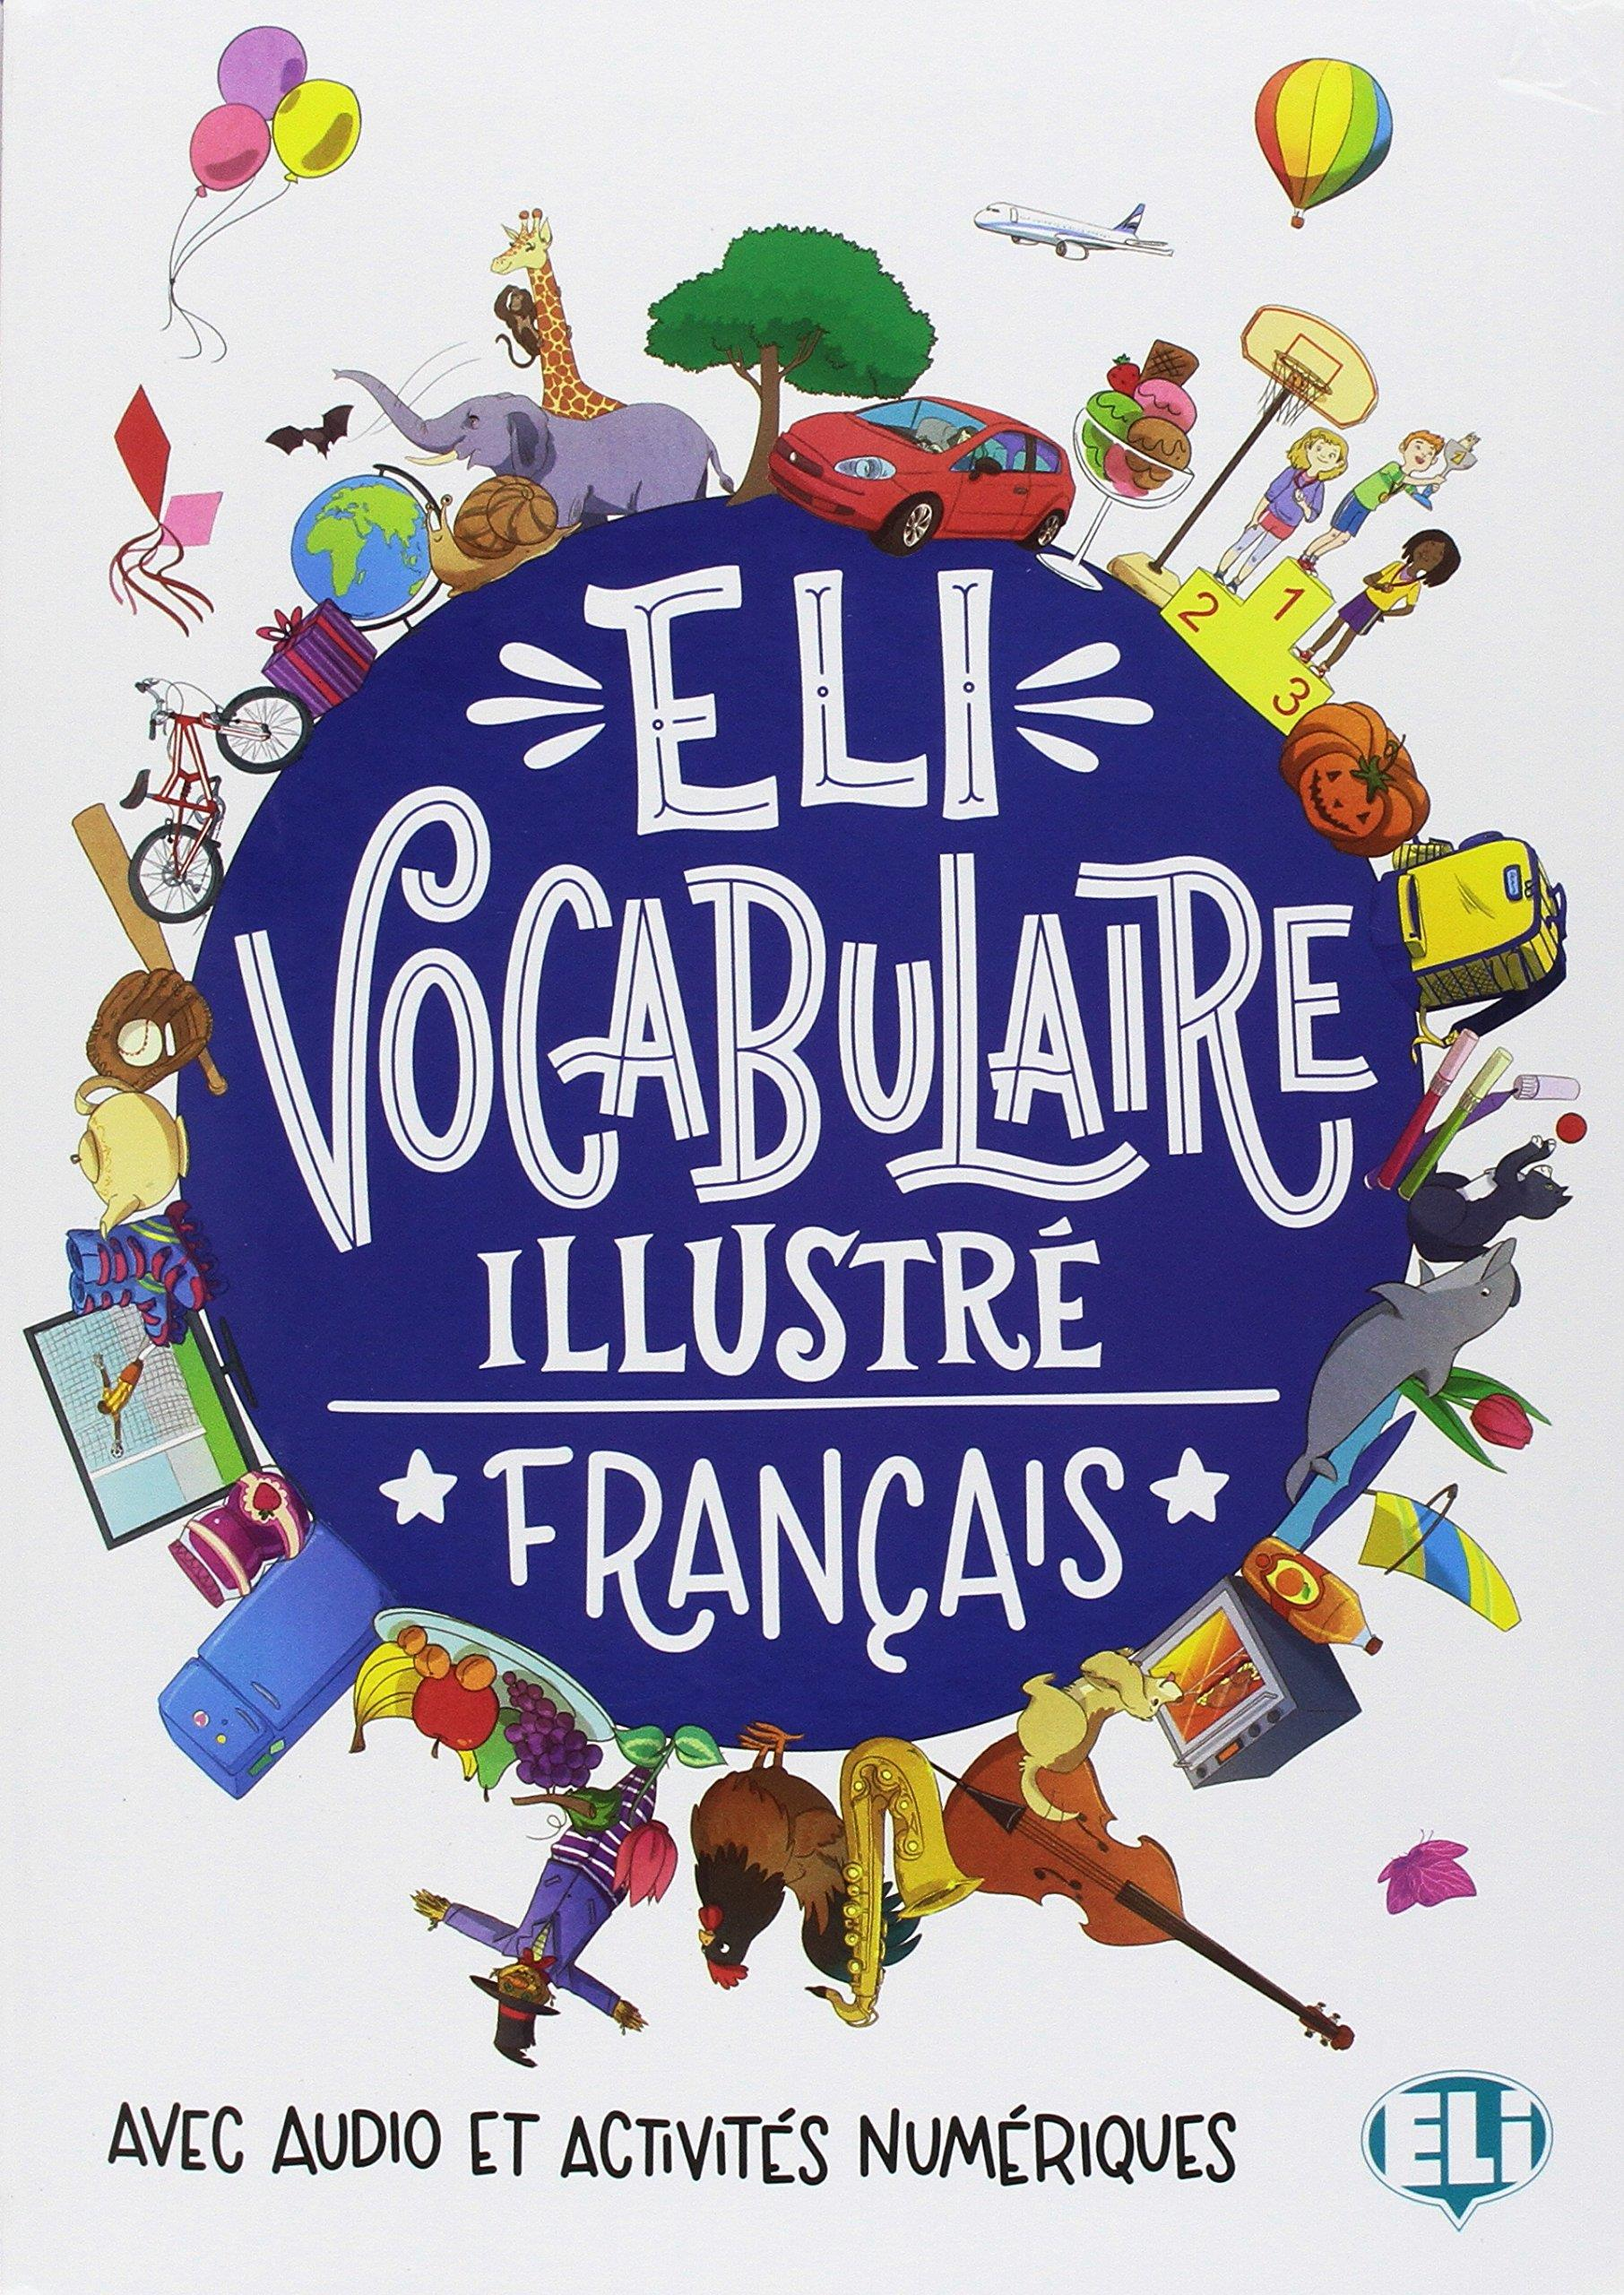 ELI VOCABULAIRE ILLUSTRE FRANCAIS (+ downloadable games and activities)